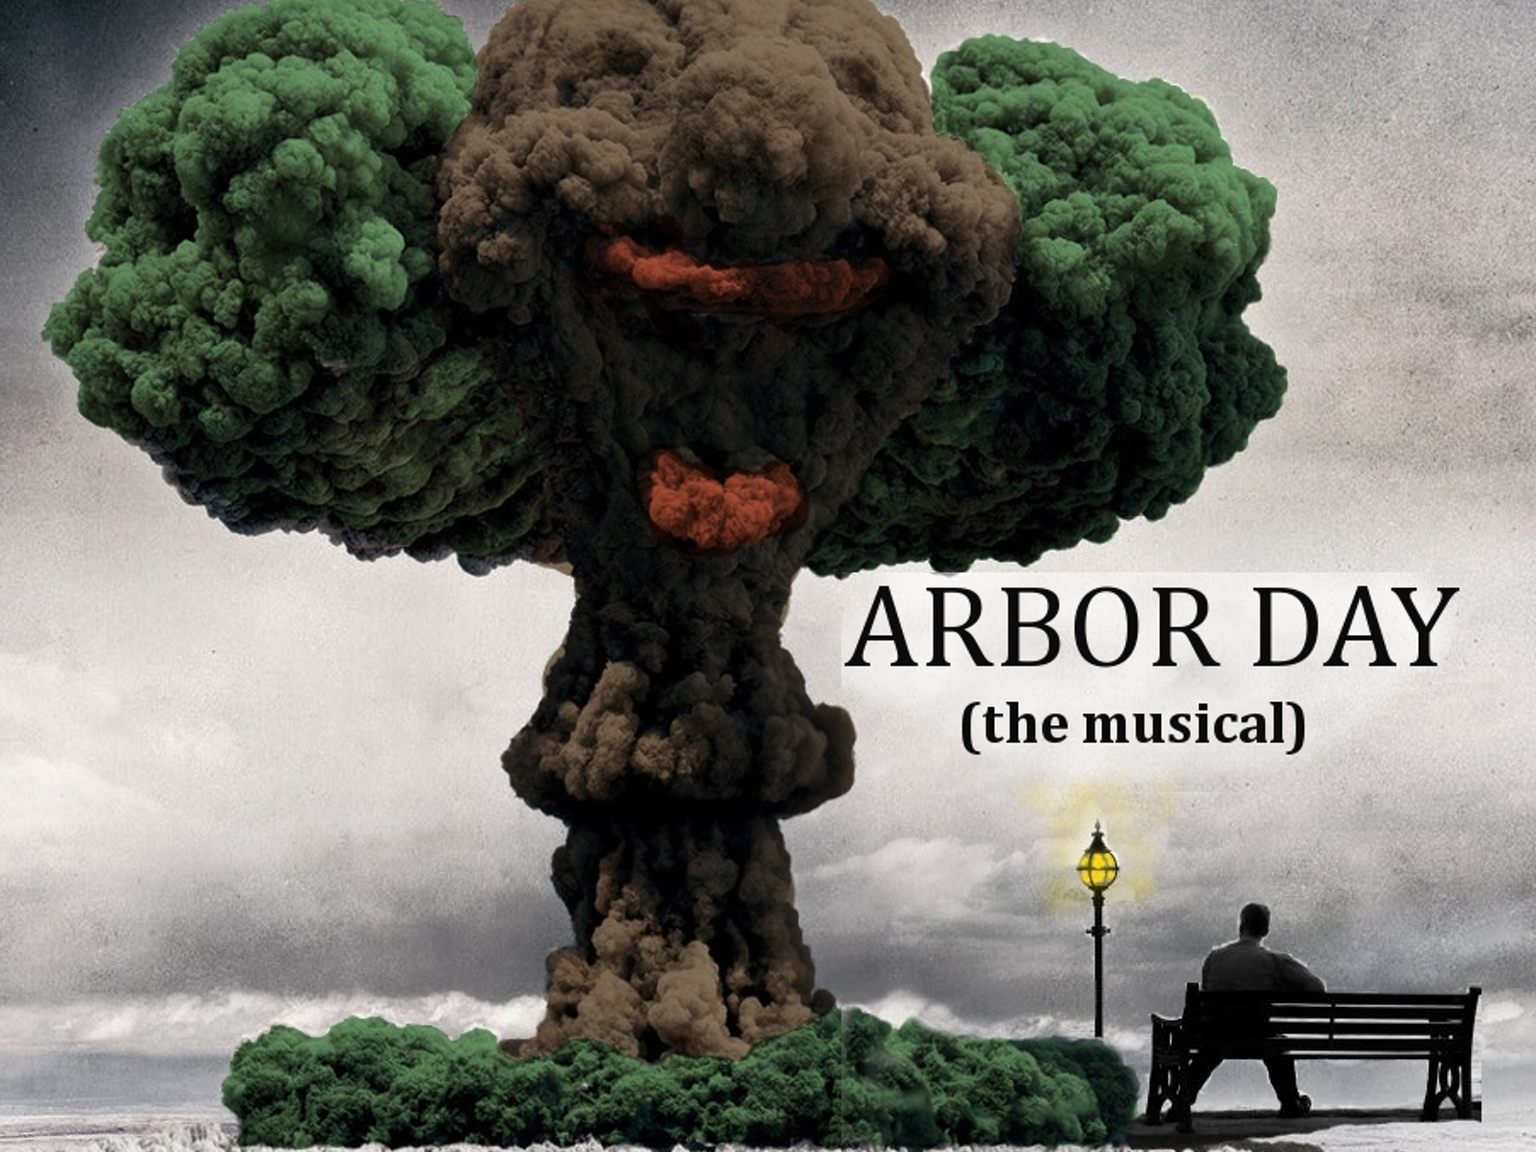 Arbor Day: the Musical, directed by Chuck Huber